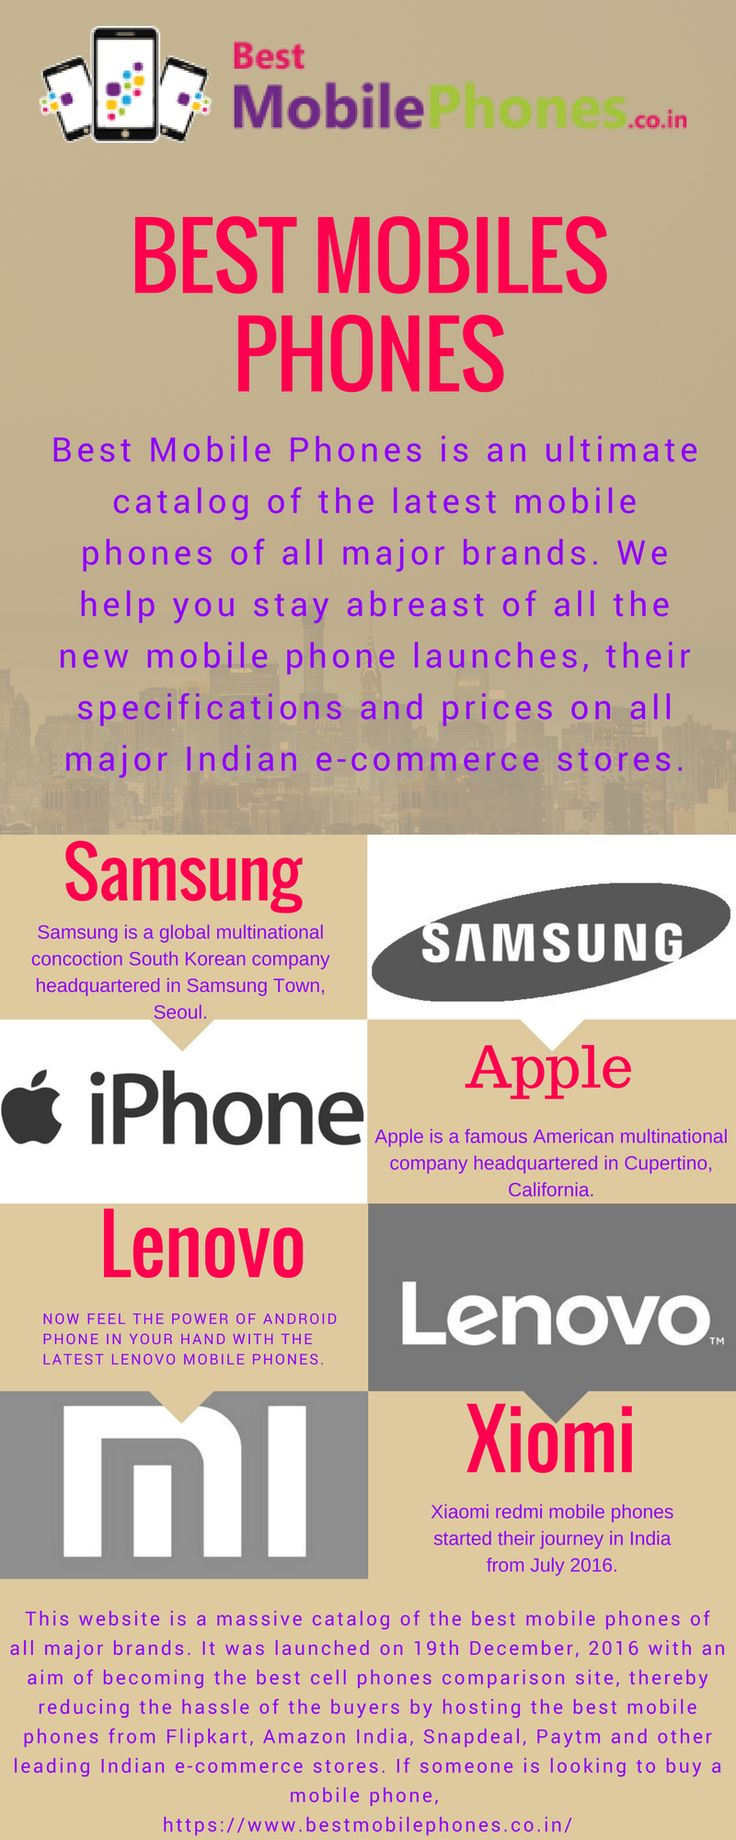 Best Mobile Phones is an ultimate catalog of the latest mobile phones of all major brands.